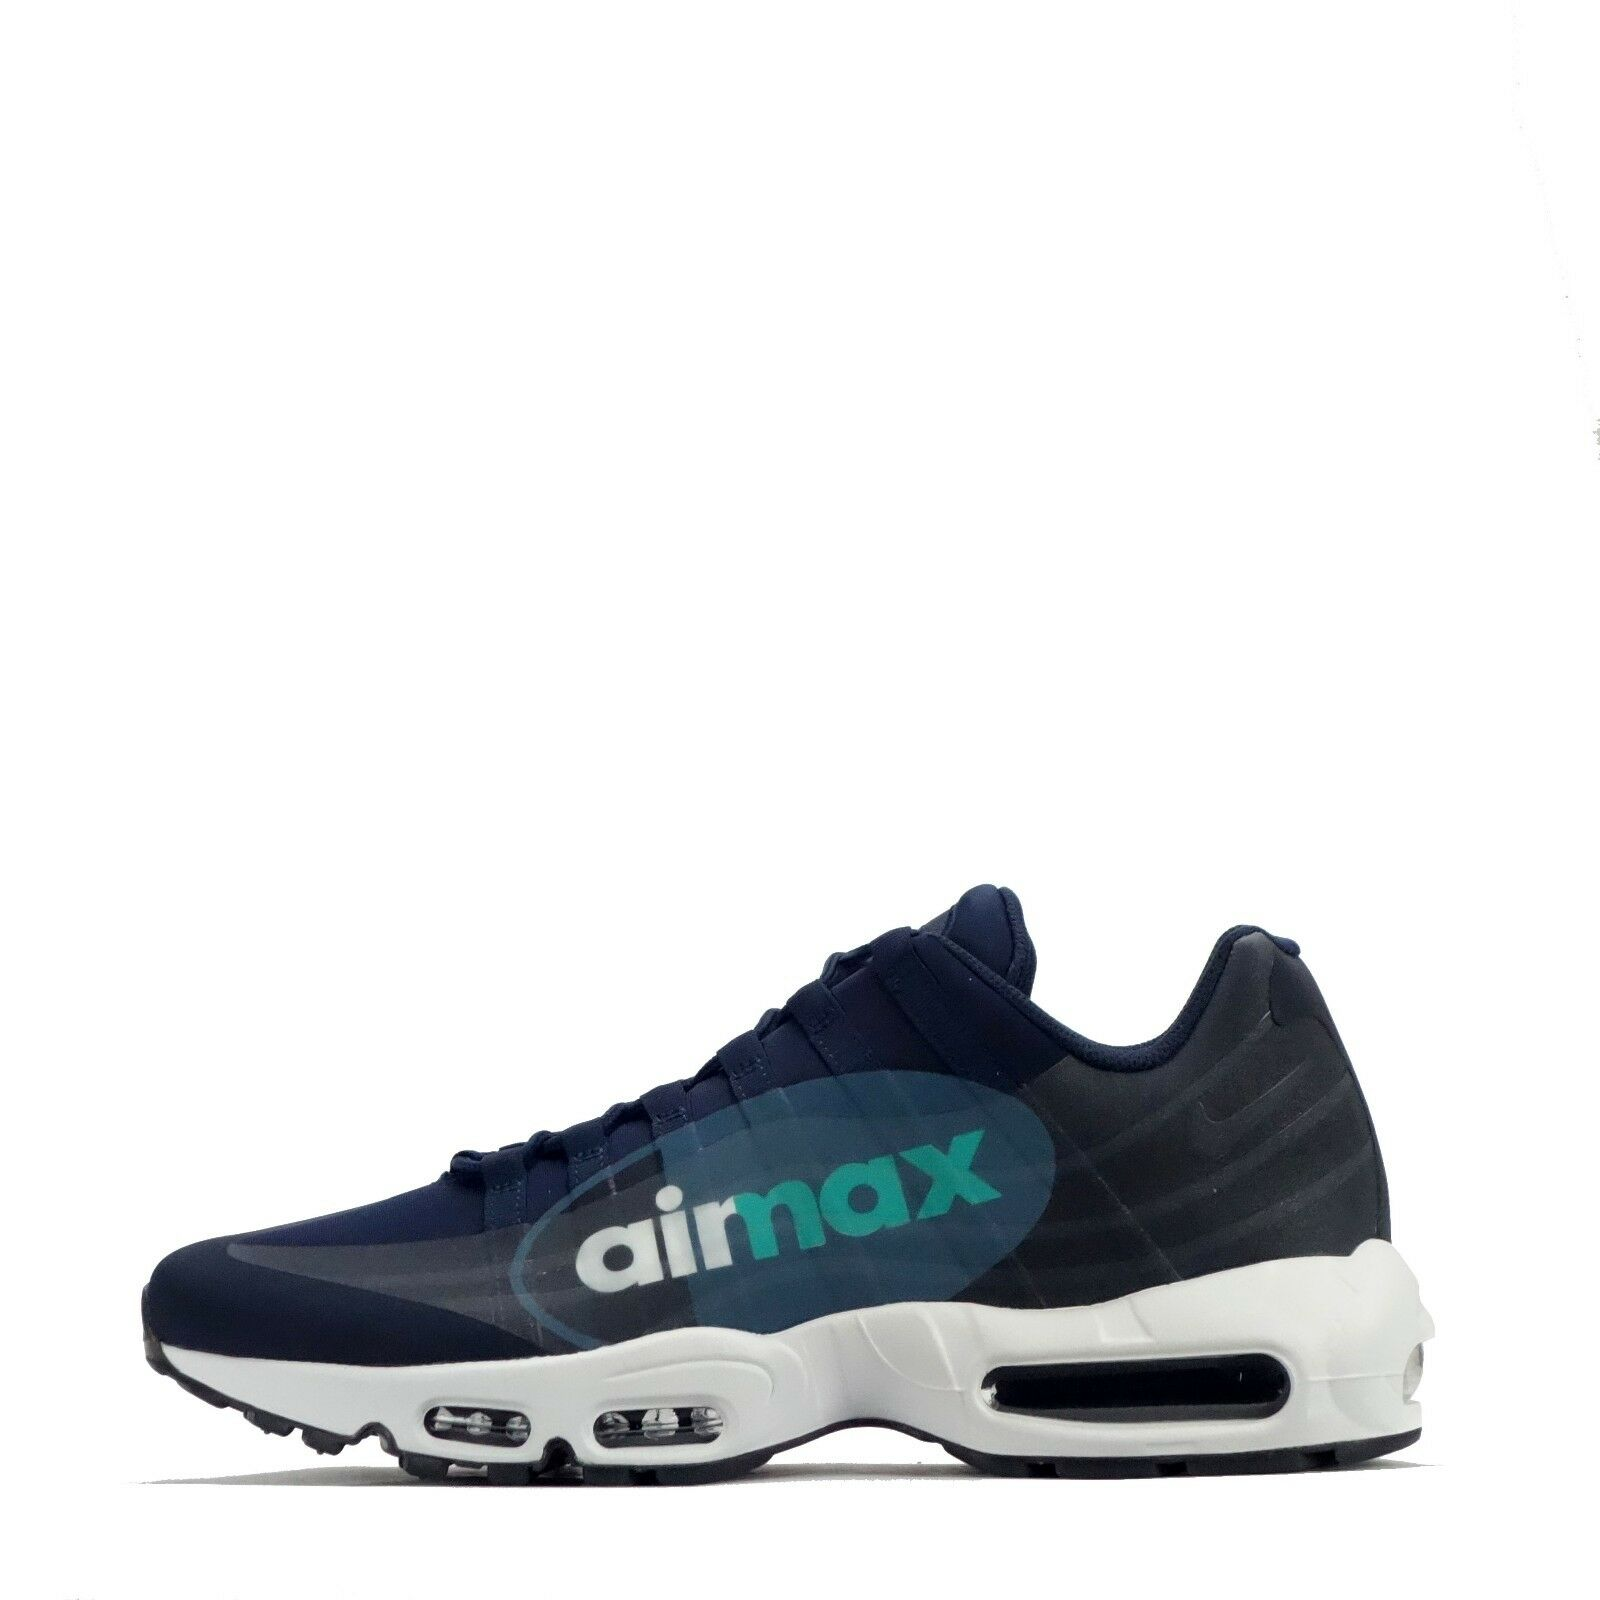 Nike Air Max 95 NS GPX Big Logo Men's Casual Walking Style Shoes Obsidian/White